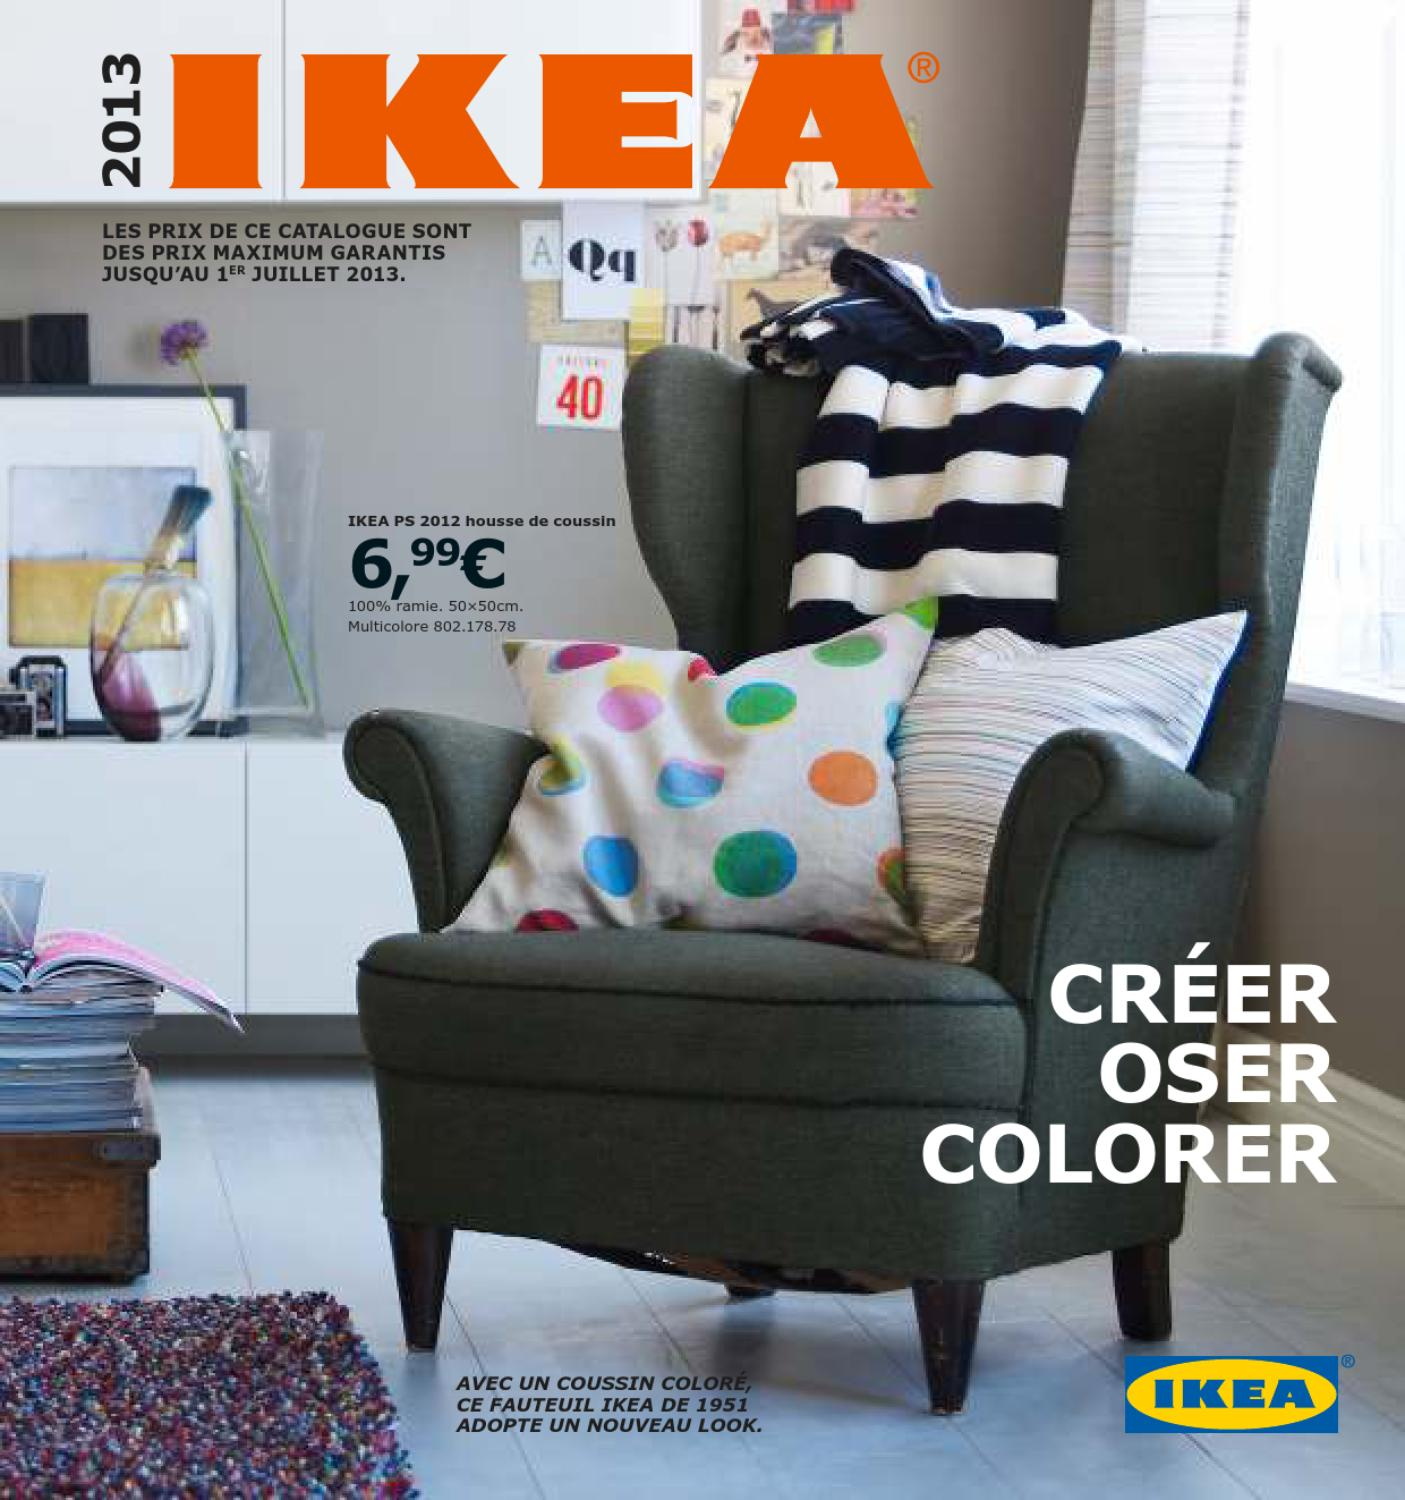 Derriere De Lit Ikea ikea catalogue france 2013promocatalogues - issuu